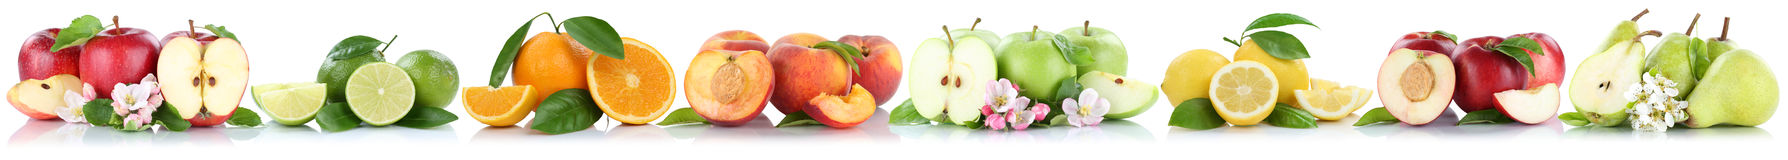 Fruits apple orange lemon nectarine apples oranges fruit in a ro Royalty Free Stock Images